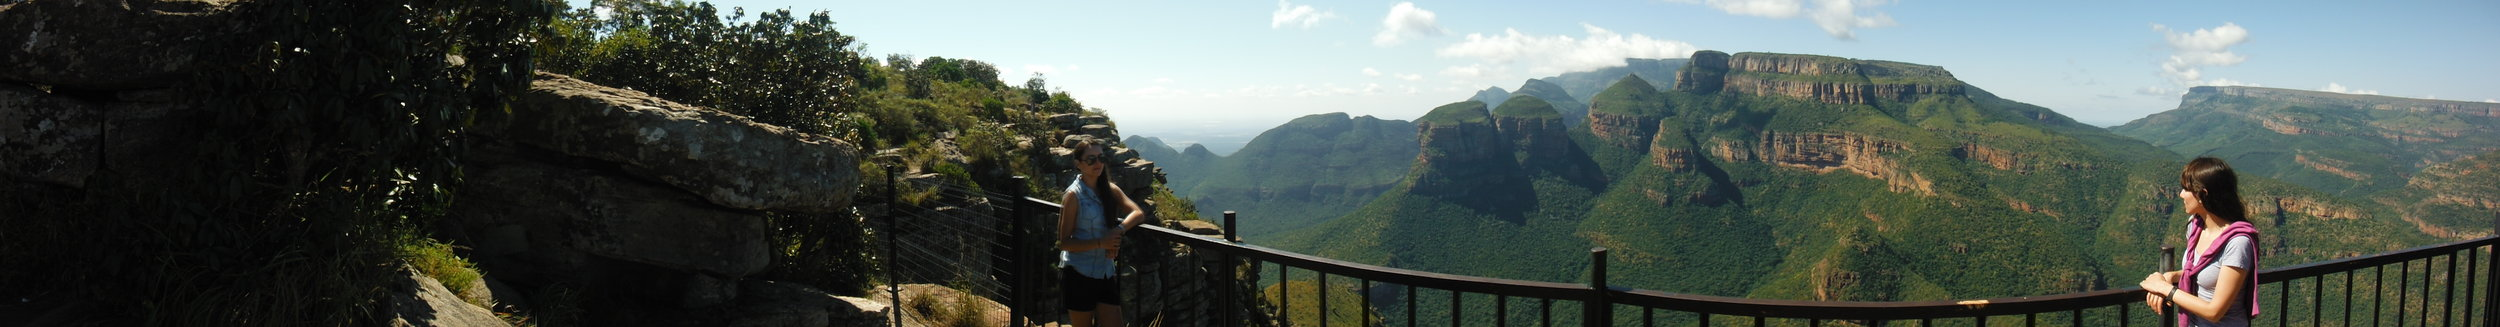 2 017 - Panorama Route road-trip, Blyde River Canyon, South Africa